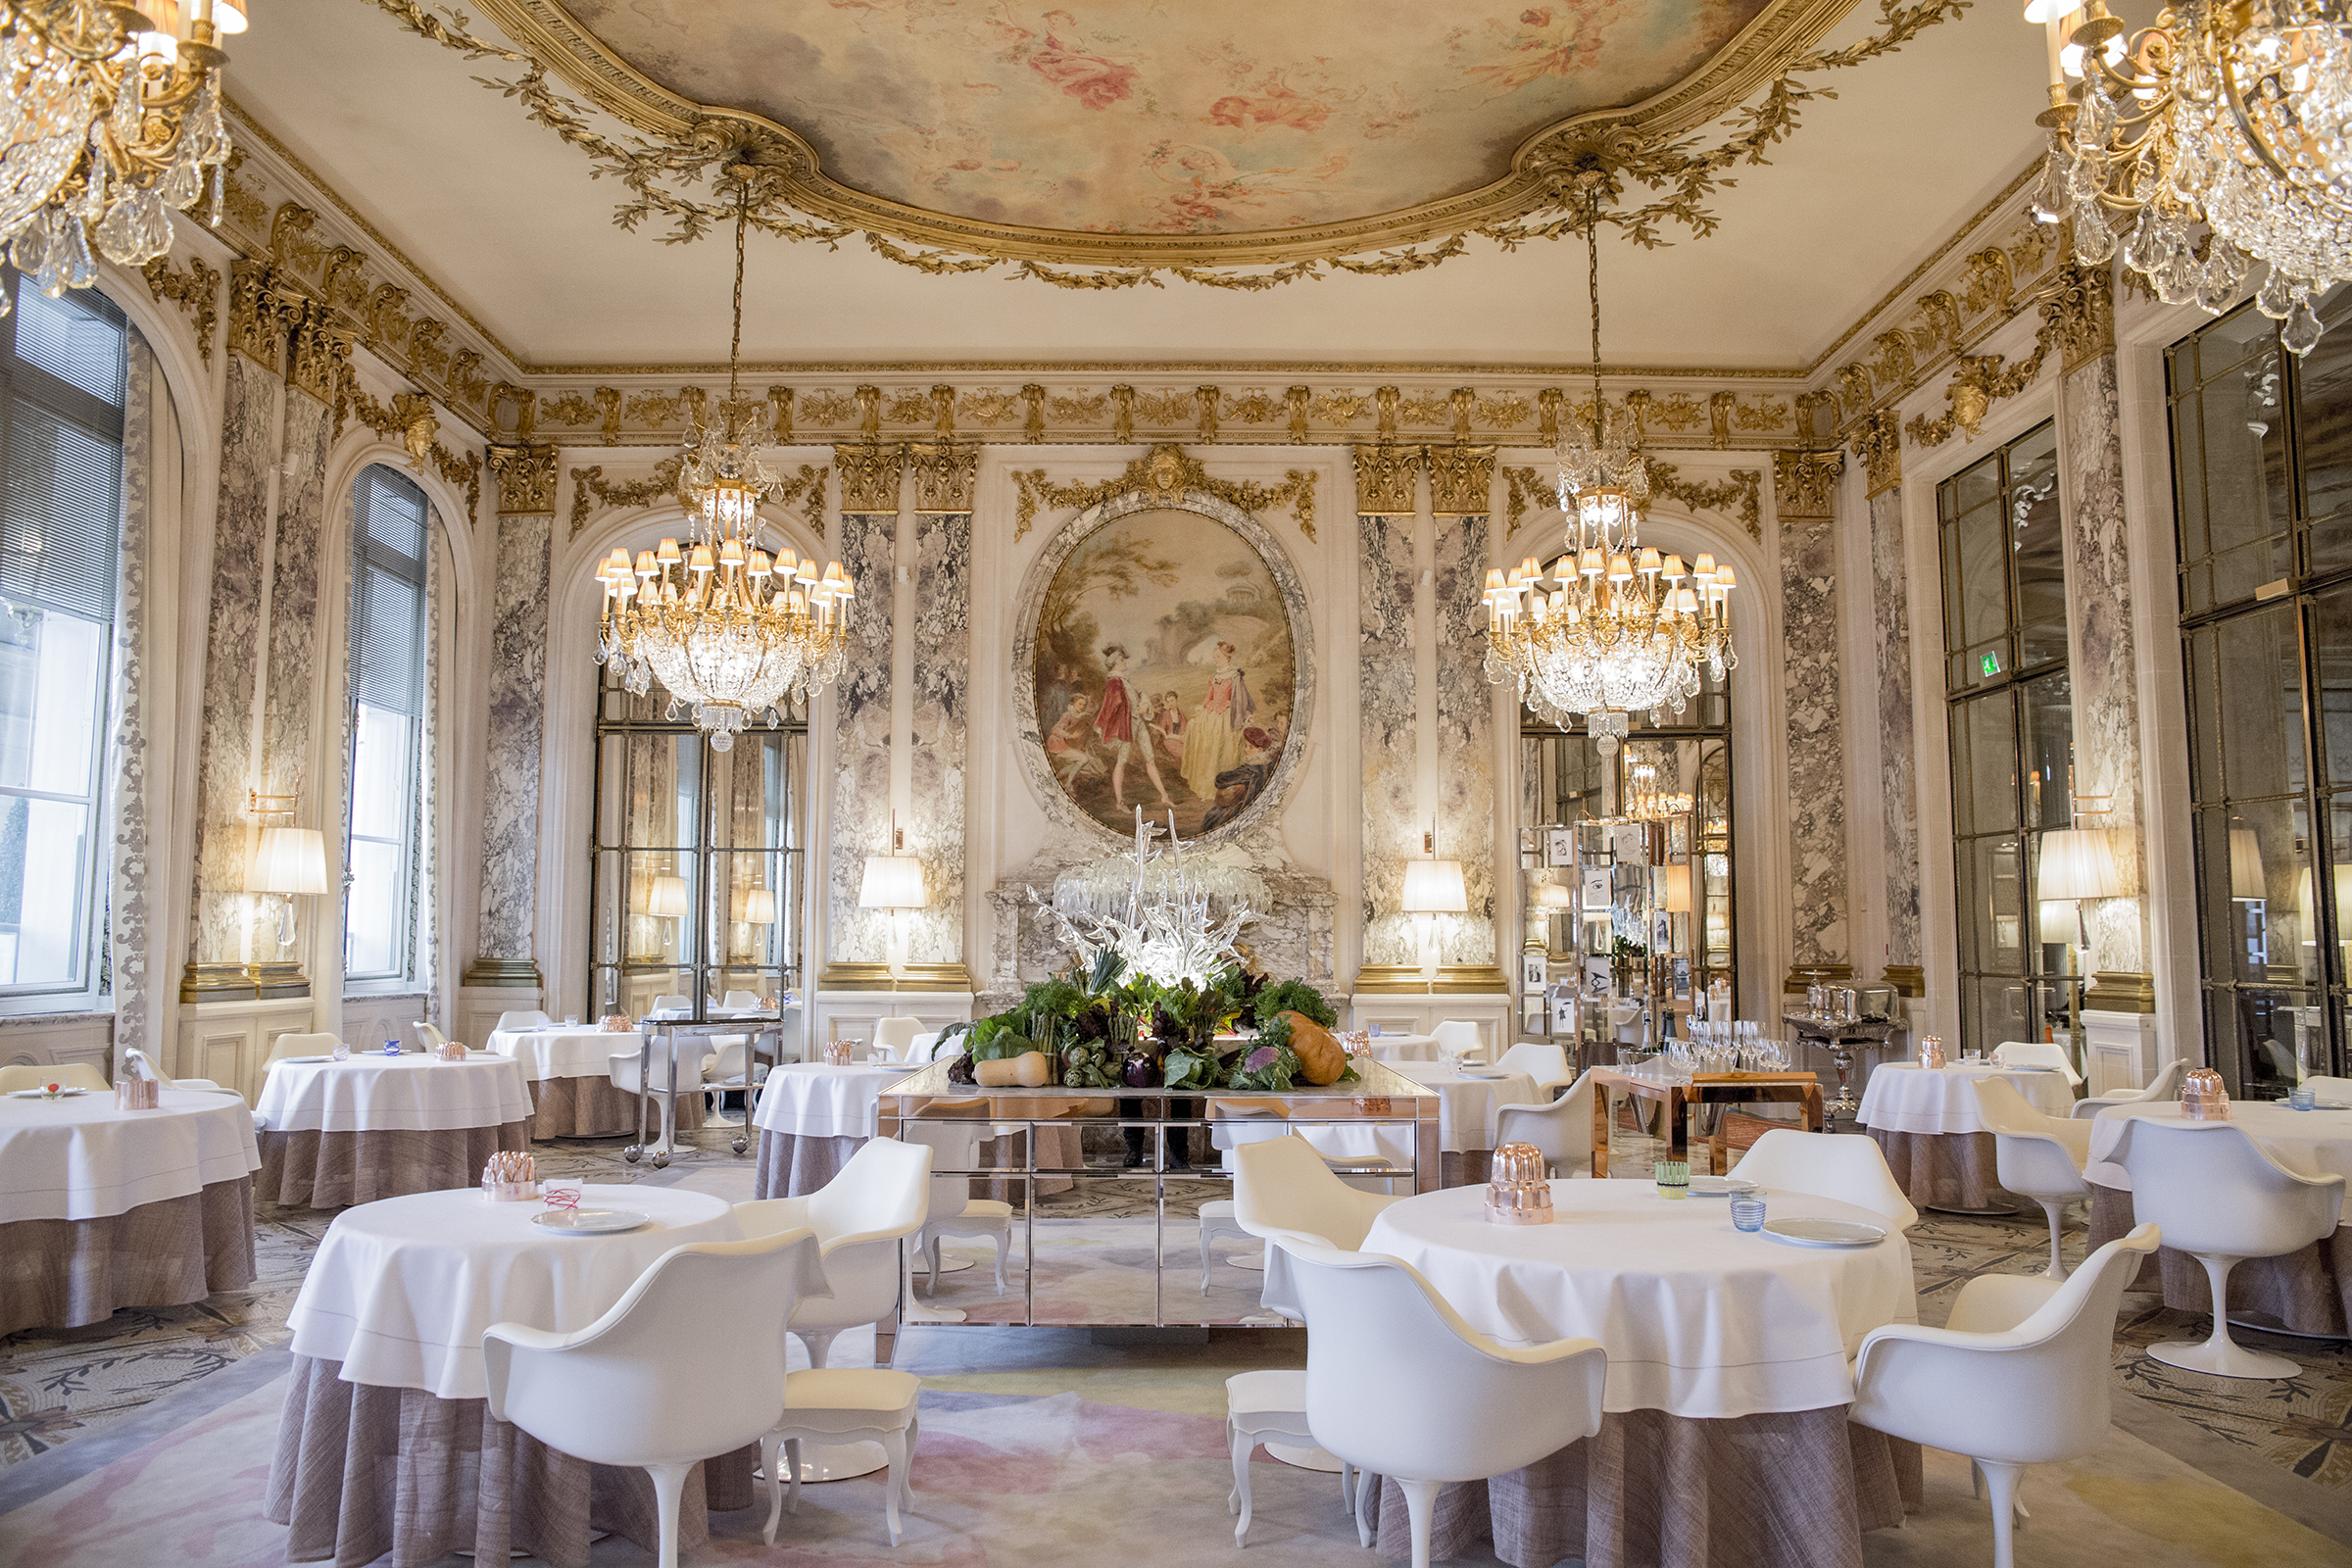 Alain Ducasse Le Meurice restaurant Paris France 48 hours in Paris